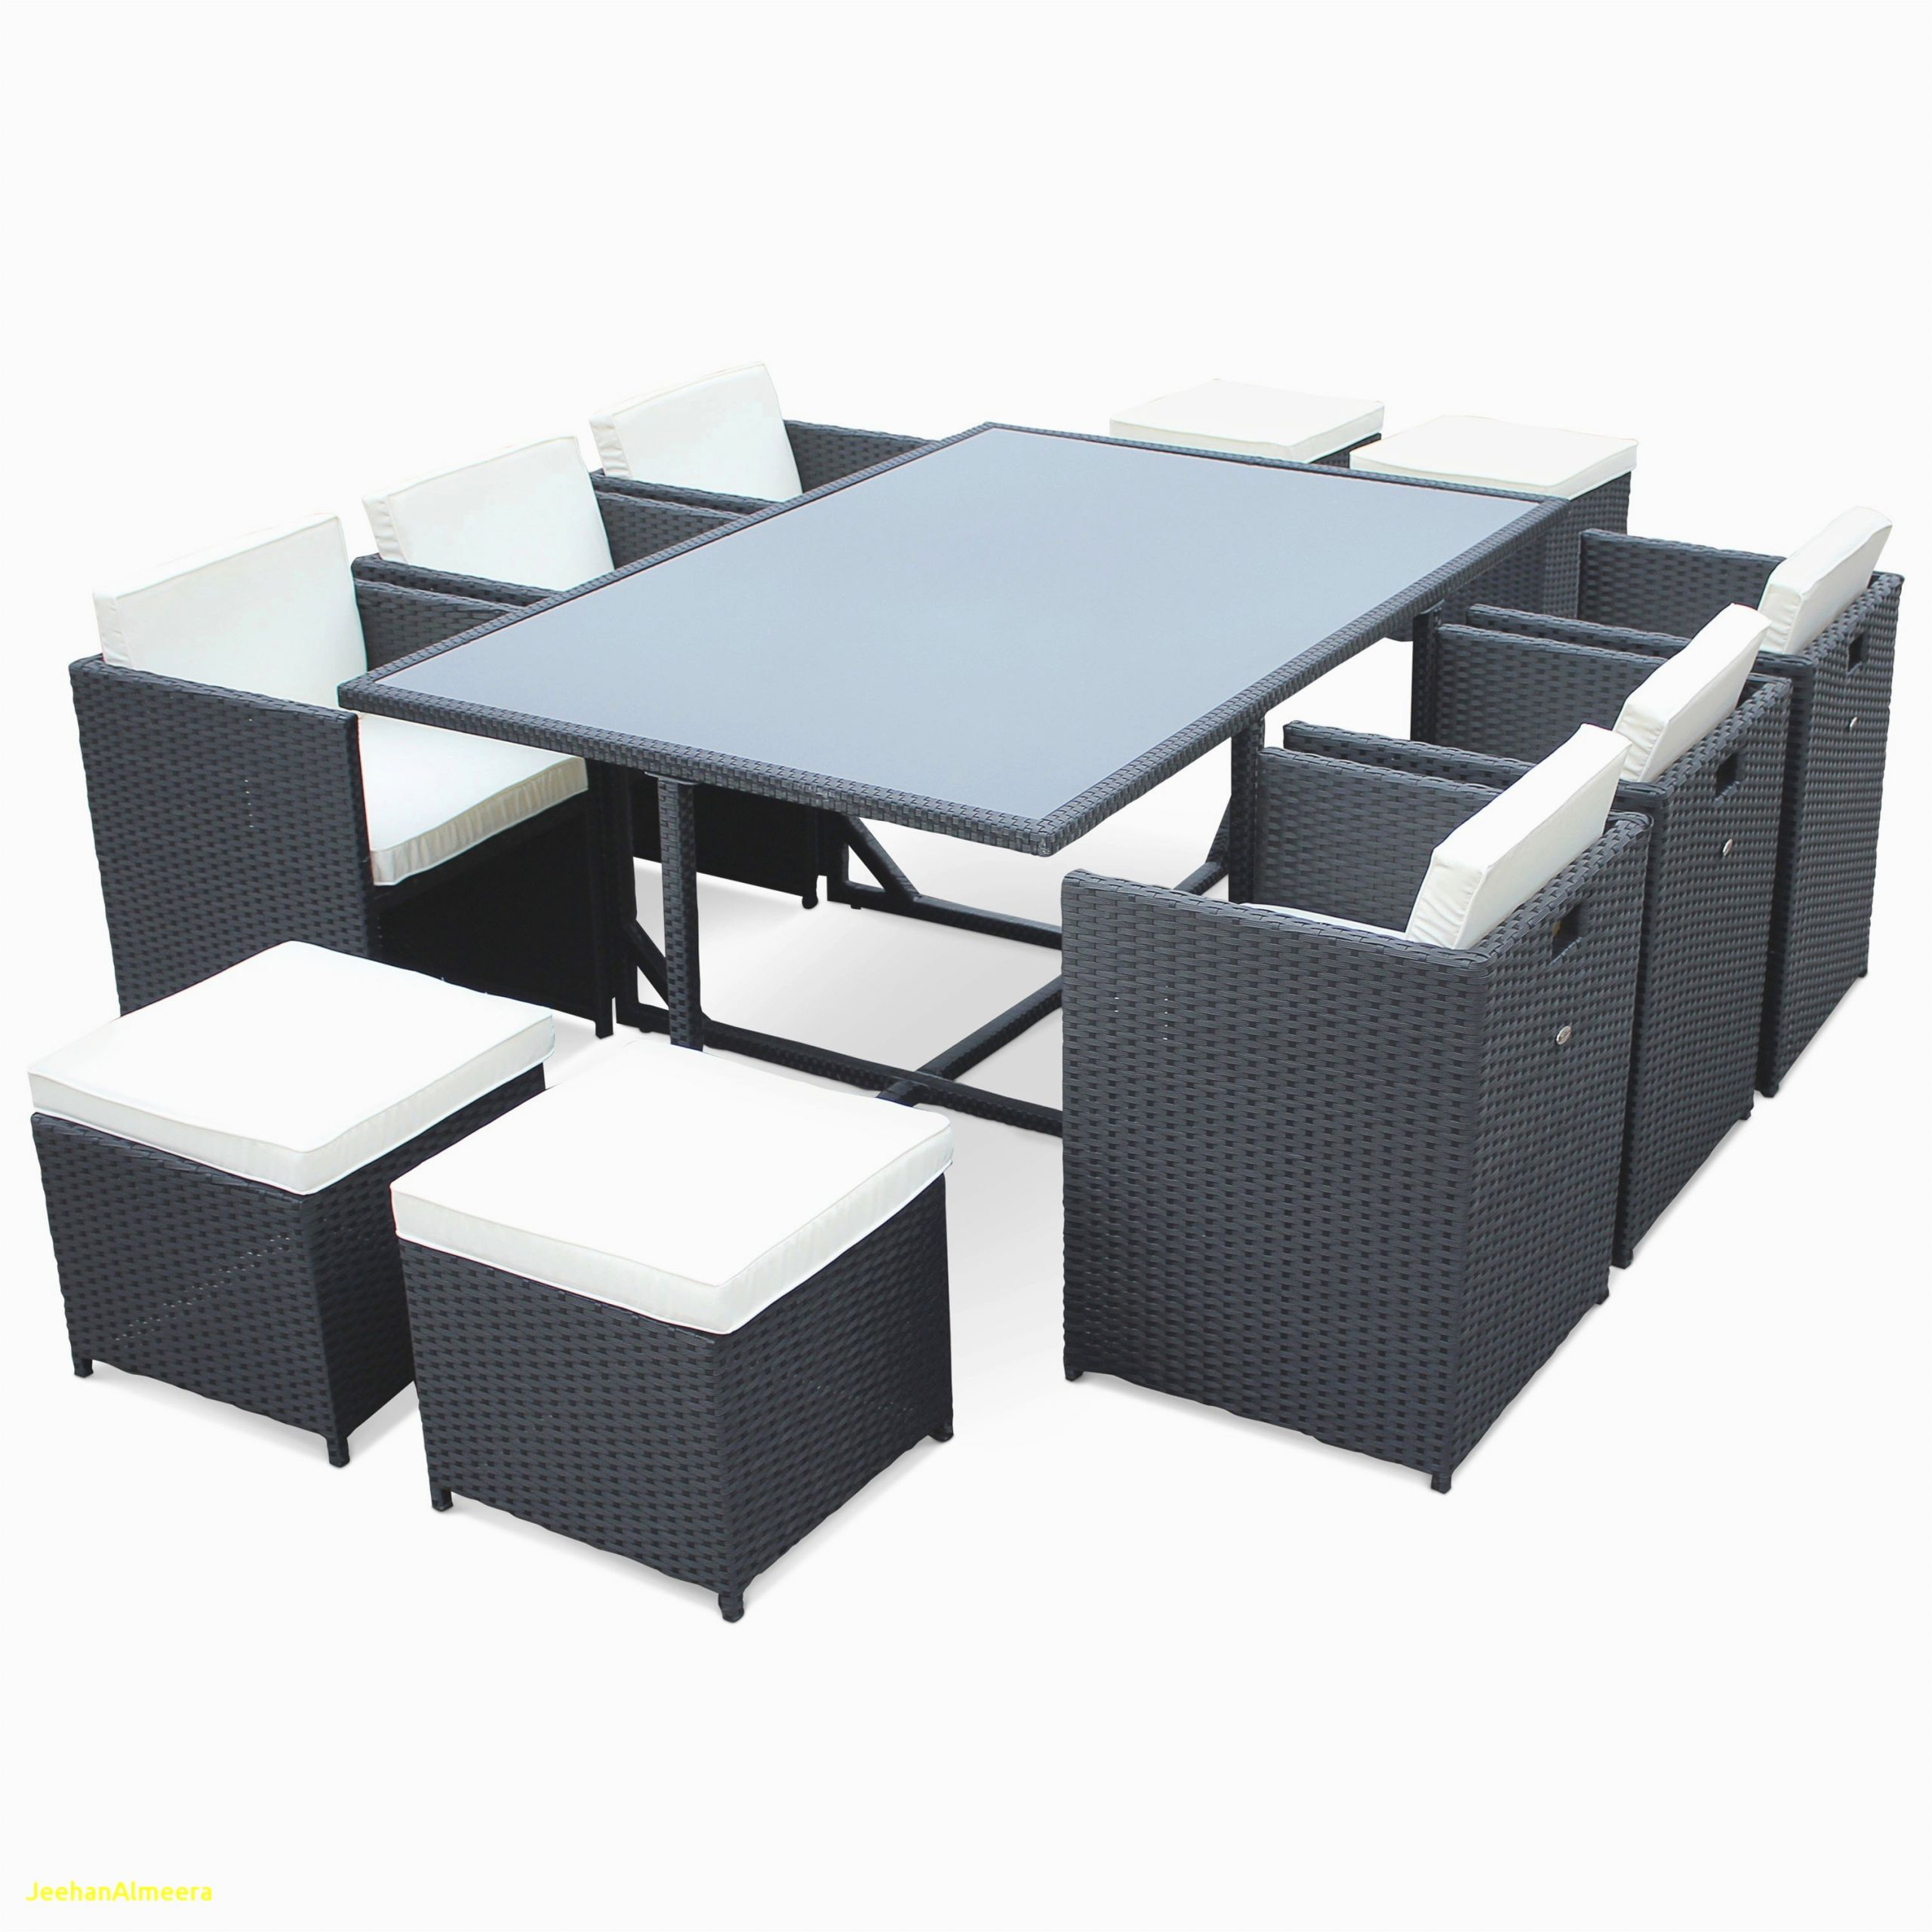 Ensemble De Jardin Aluminium Charmant Excellent De Ensemble Table Et Chaises De Jardin